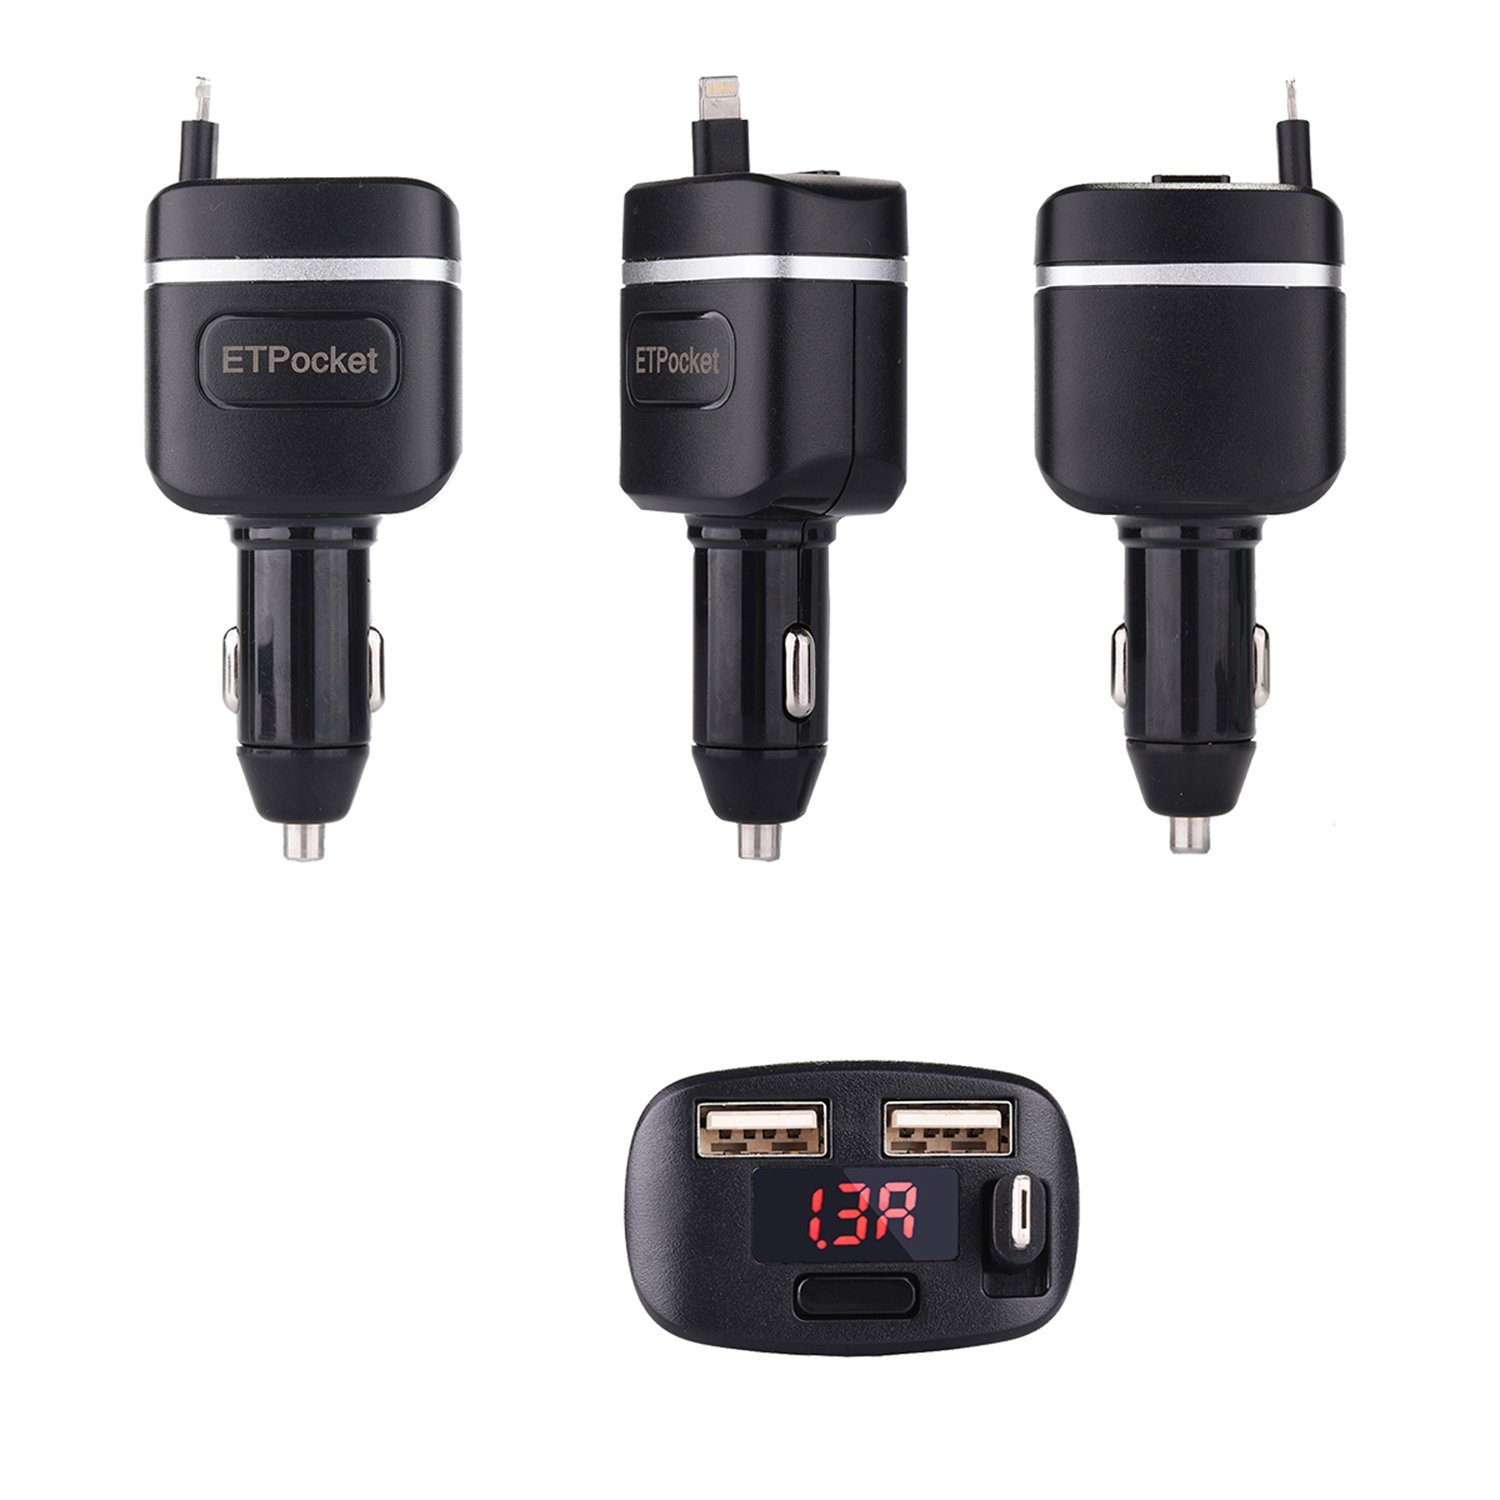 Black Retractable Car Chargers Tangle-Free Cable 2in1 Vehicle USB Car Charger for Apple iPhone X iPhone 8 Plus 7 Plus 6 Plus iPhone 5 iPod Touch 6 5 Samsung Galaxy Note 8 S8 Plus Micro-USB Devices